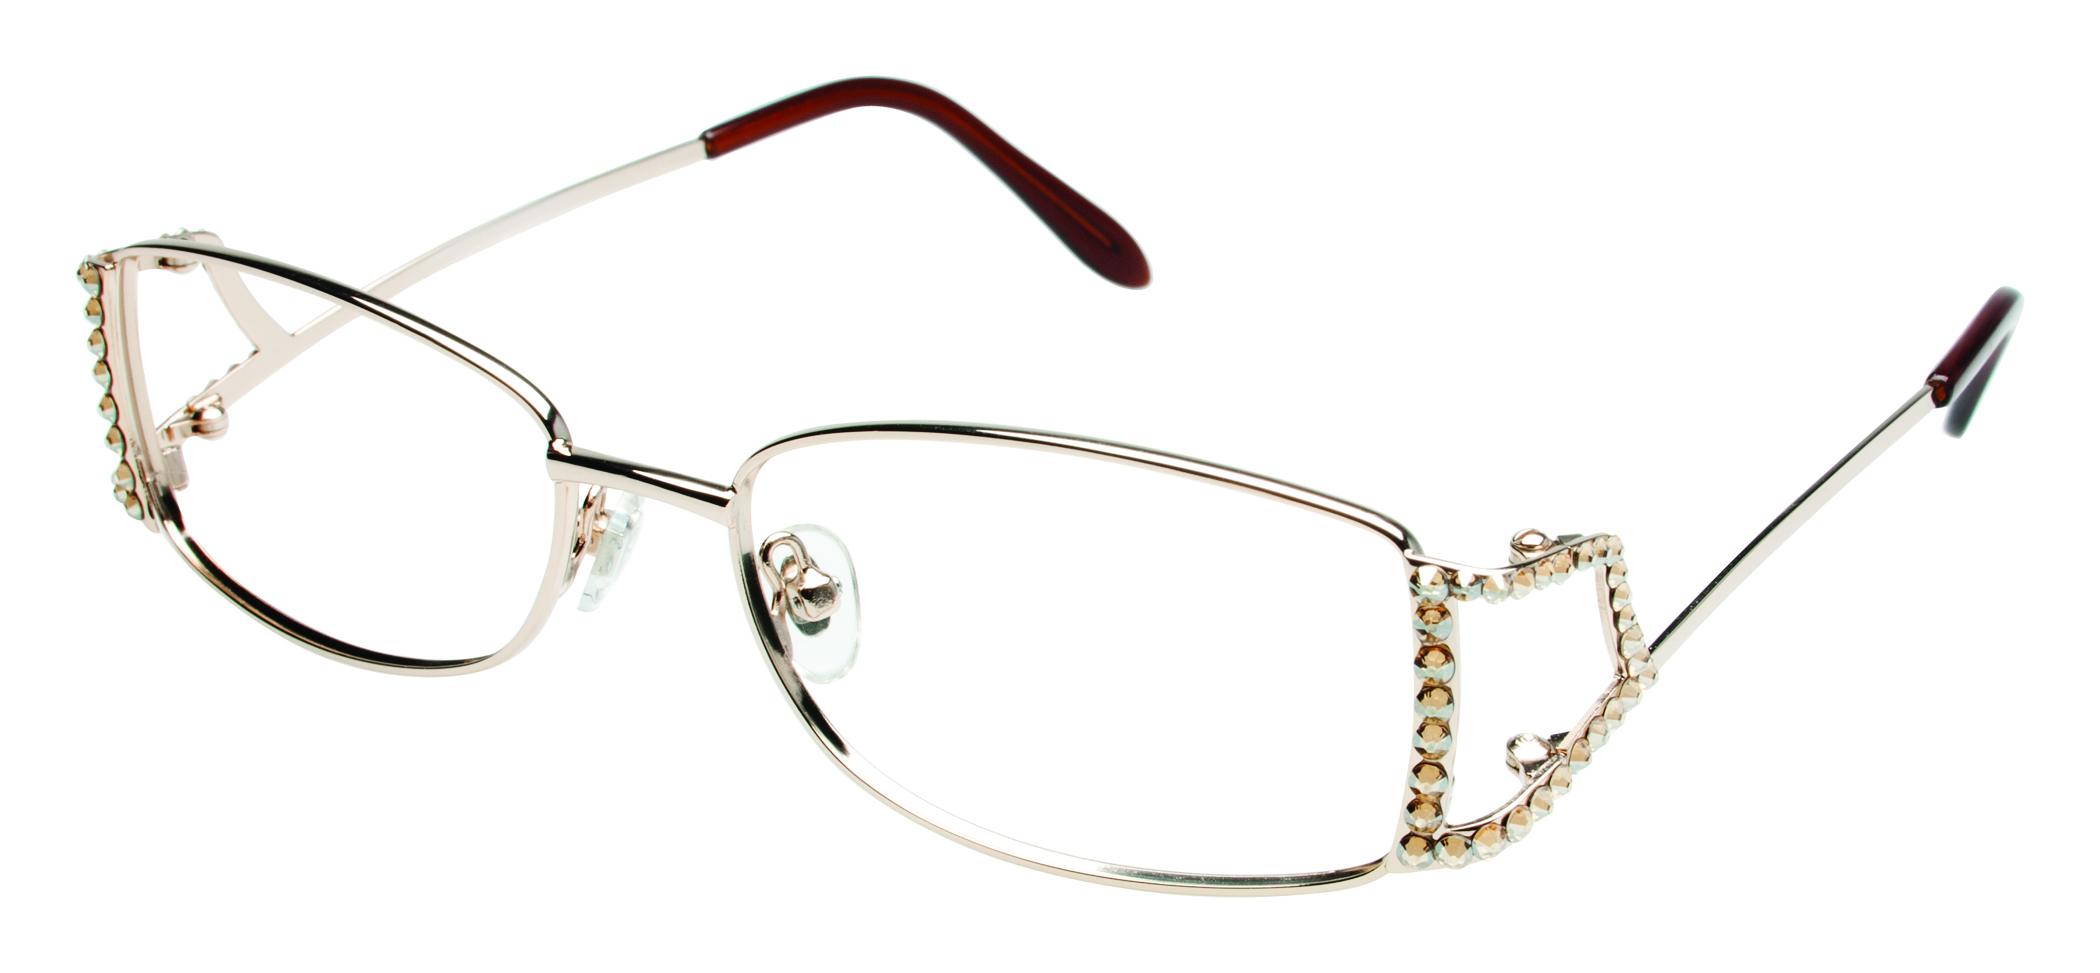 New Dazzling Eyewear and Sunglasses from Jimmy Crystal New York